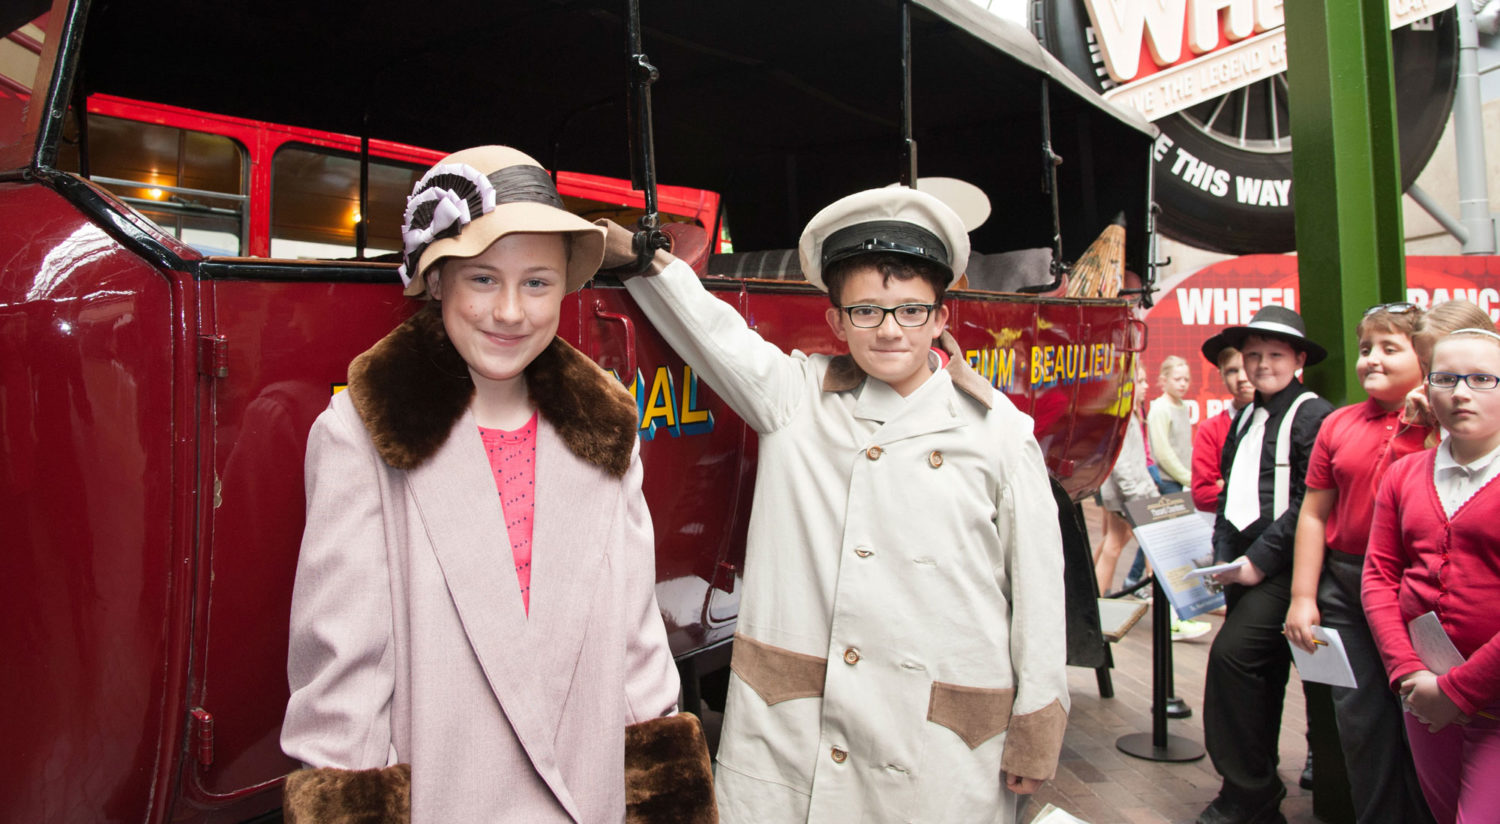 Children in costume by the 1922 Maxwell Charabanc at the National Motor Museum